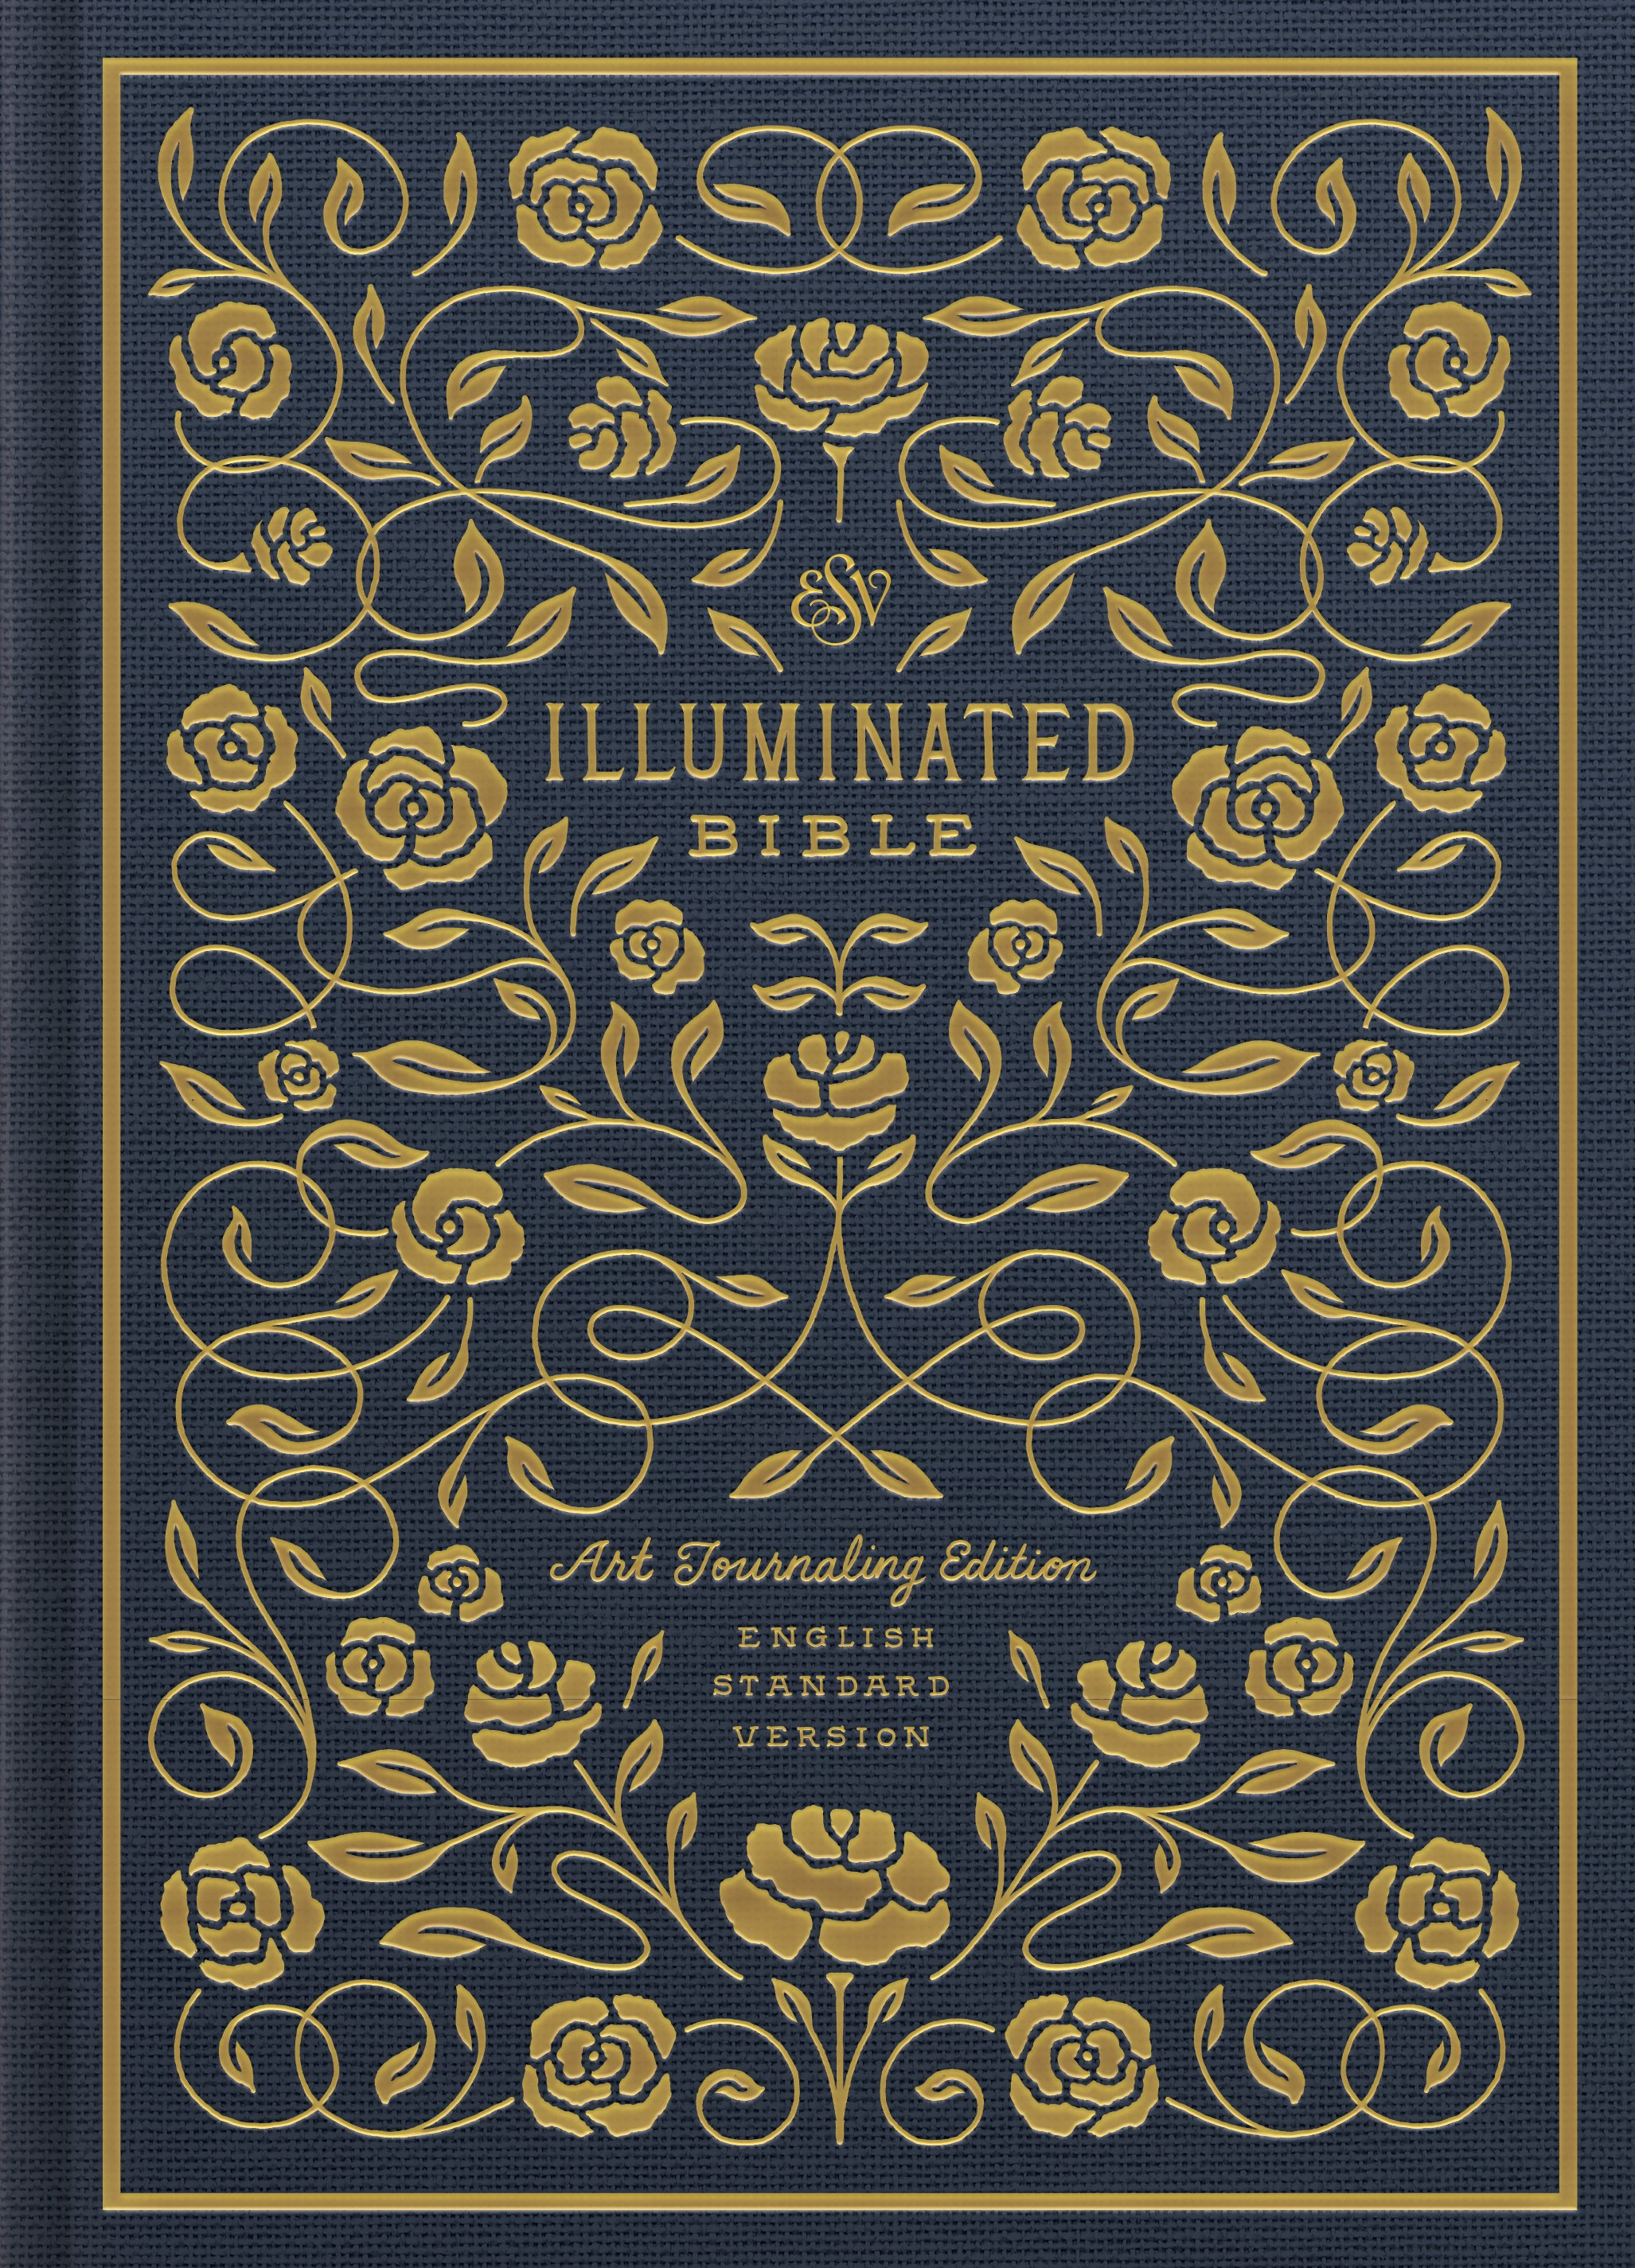 ESV Illuminated Bible, Art Journaling Edition (Cloth Over Board) by Not Available, ISBN: 9781433558313